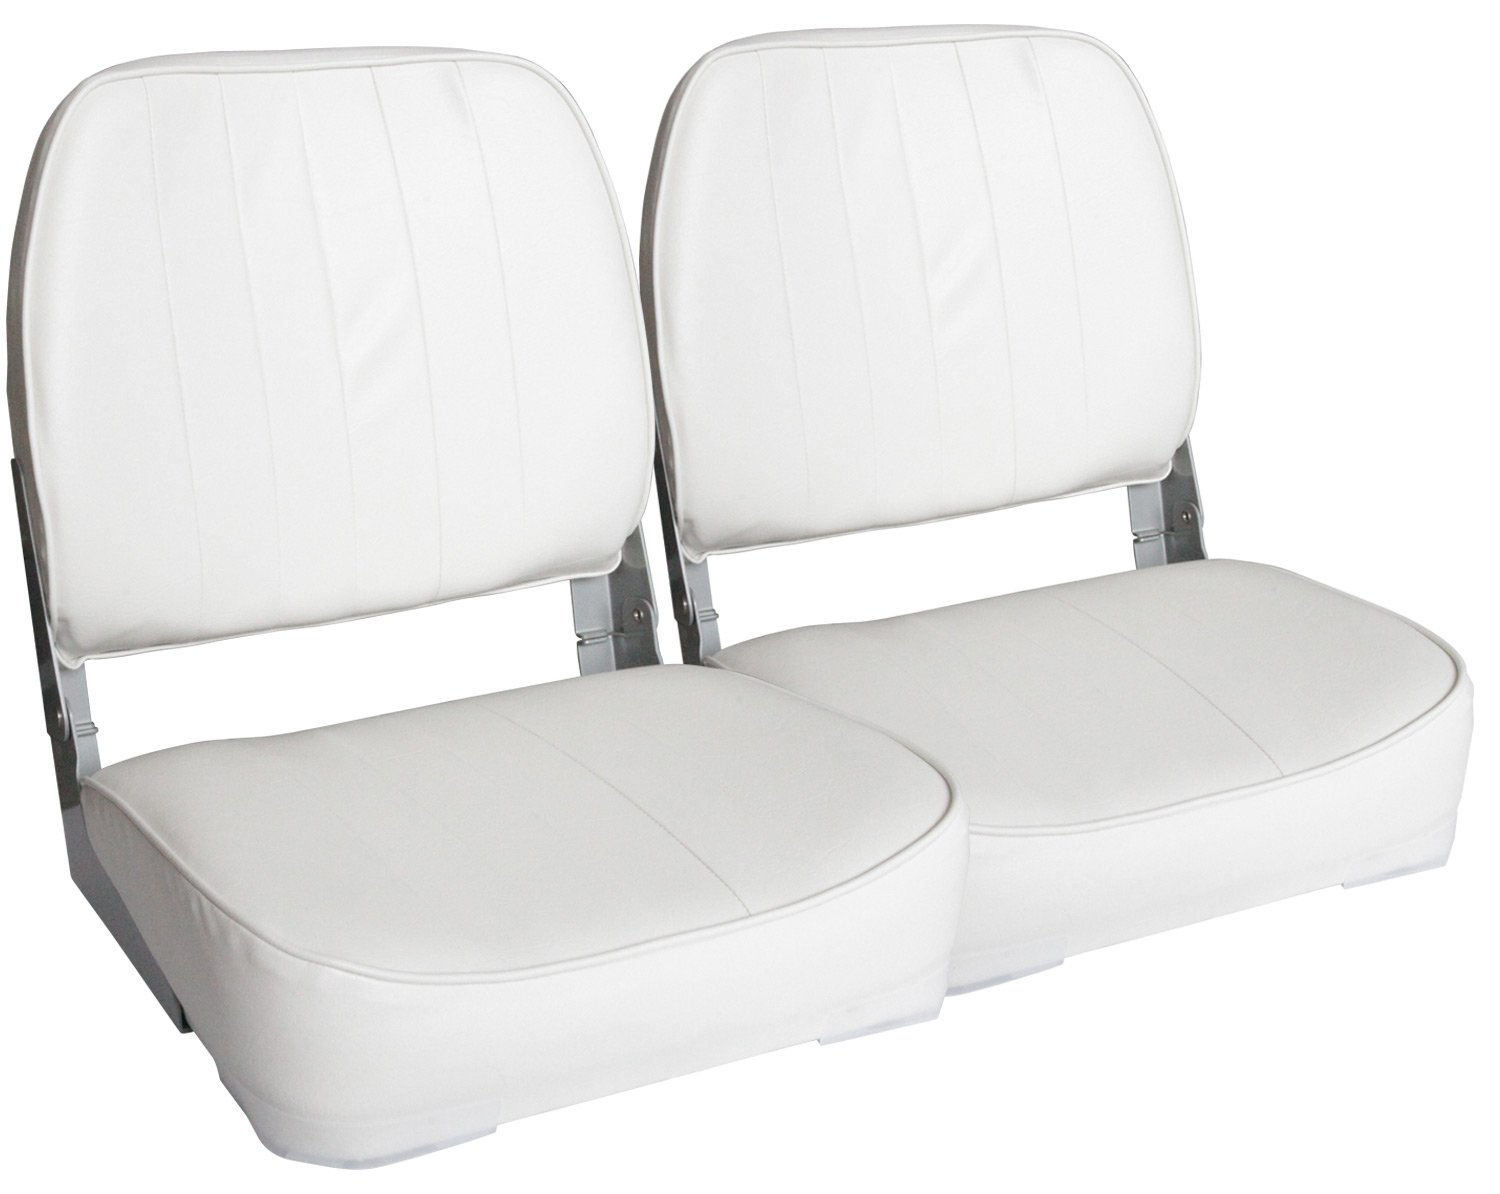 Leader Accessories A Pair of New Low Back Folding Boat Seats(2 Seats) (White) by Leader Accessories